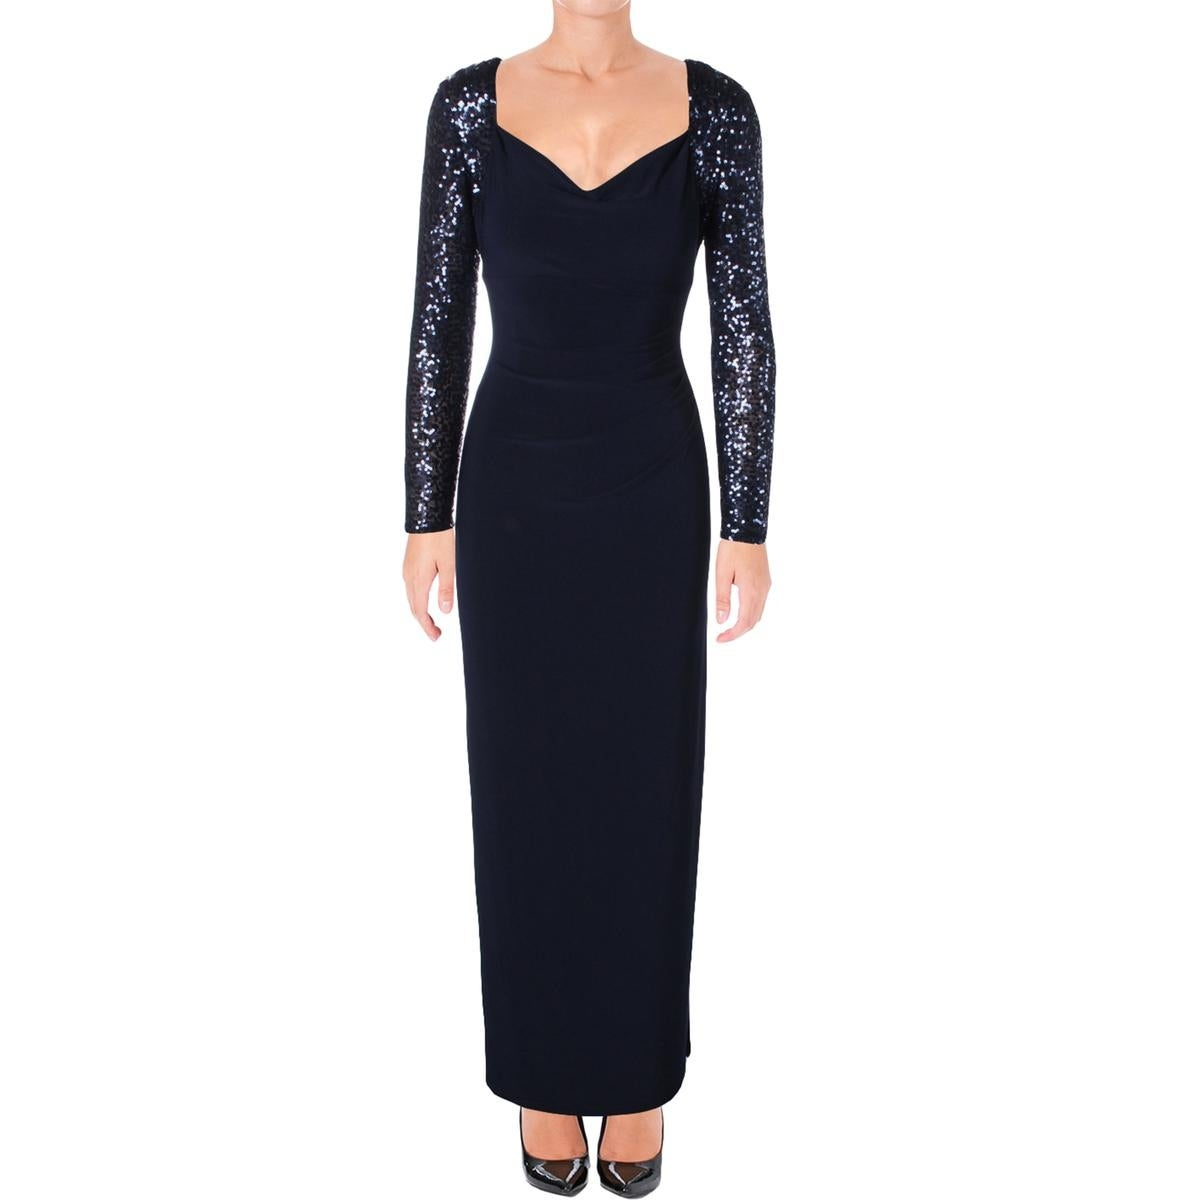 Shop Lauren Ralph Lauren Womens Formal Dress Sequined Gathered - Free  Shipping On Orders Over $45 - Overstock.com - 18403174